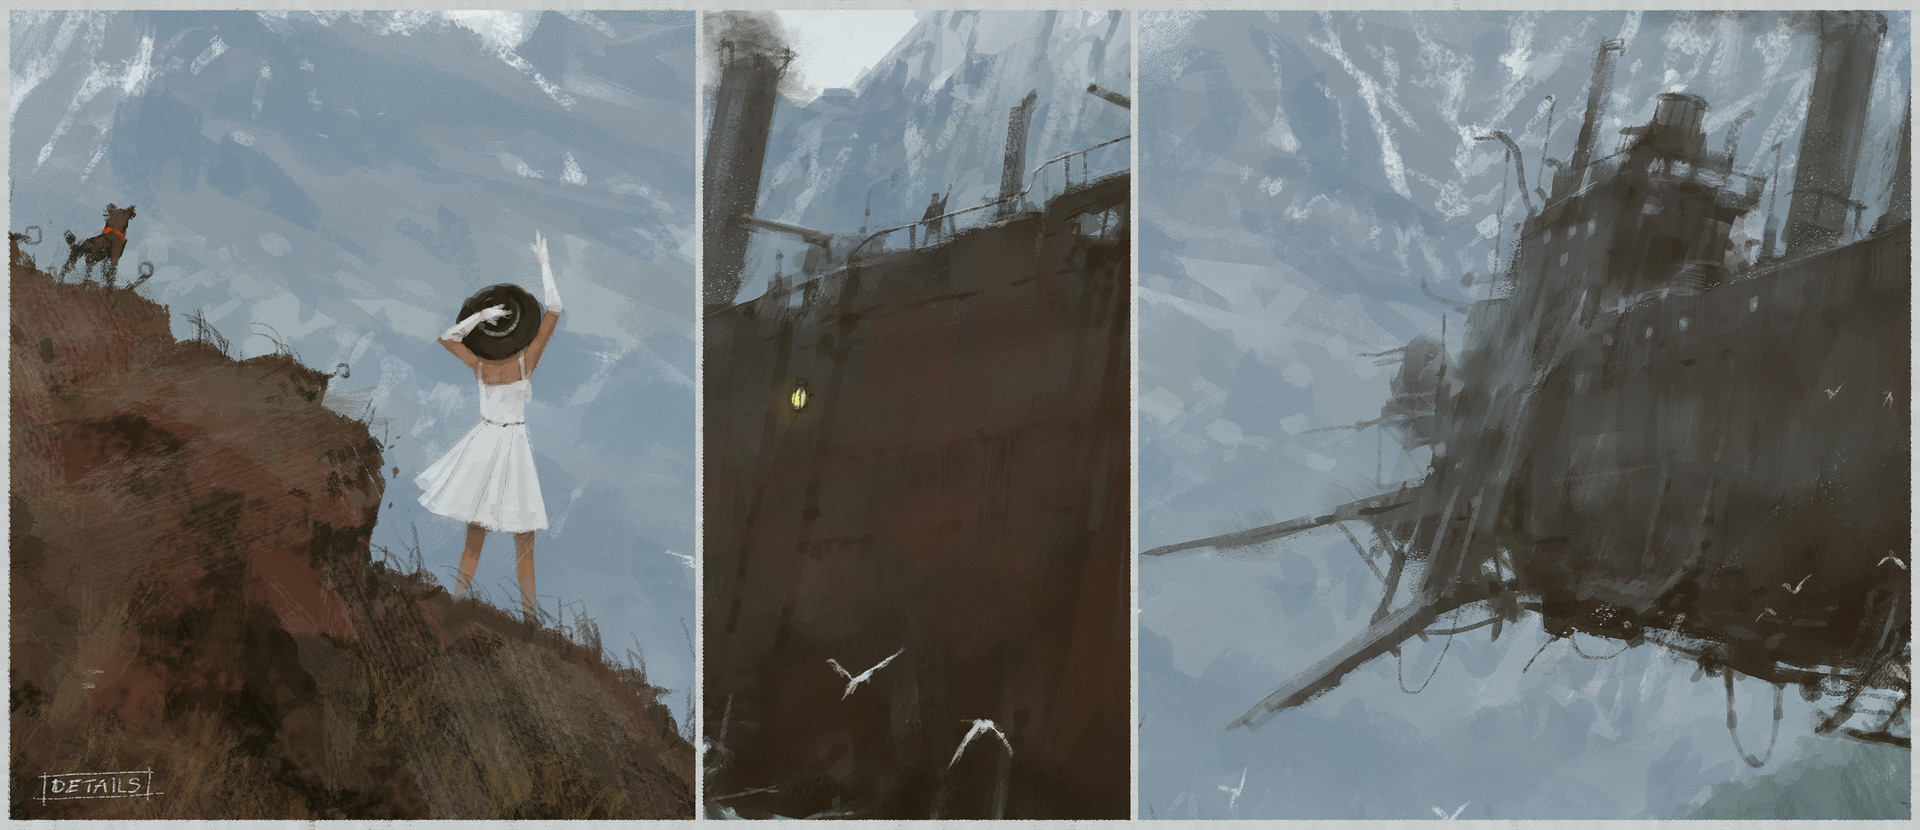 Jakub rozalski 1920 big role process01